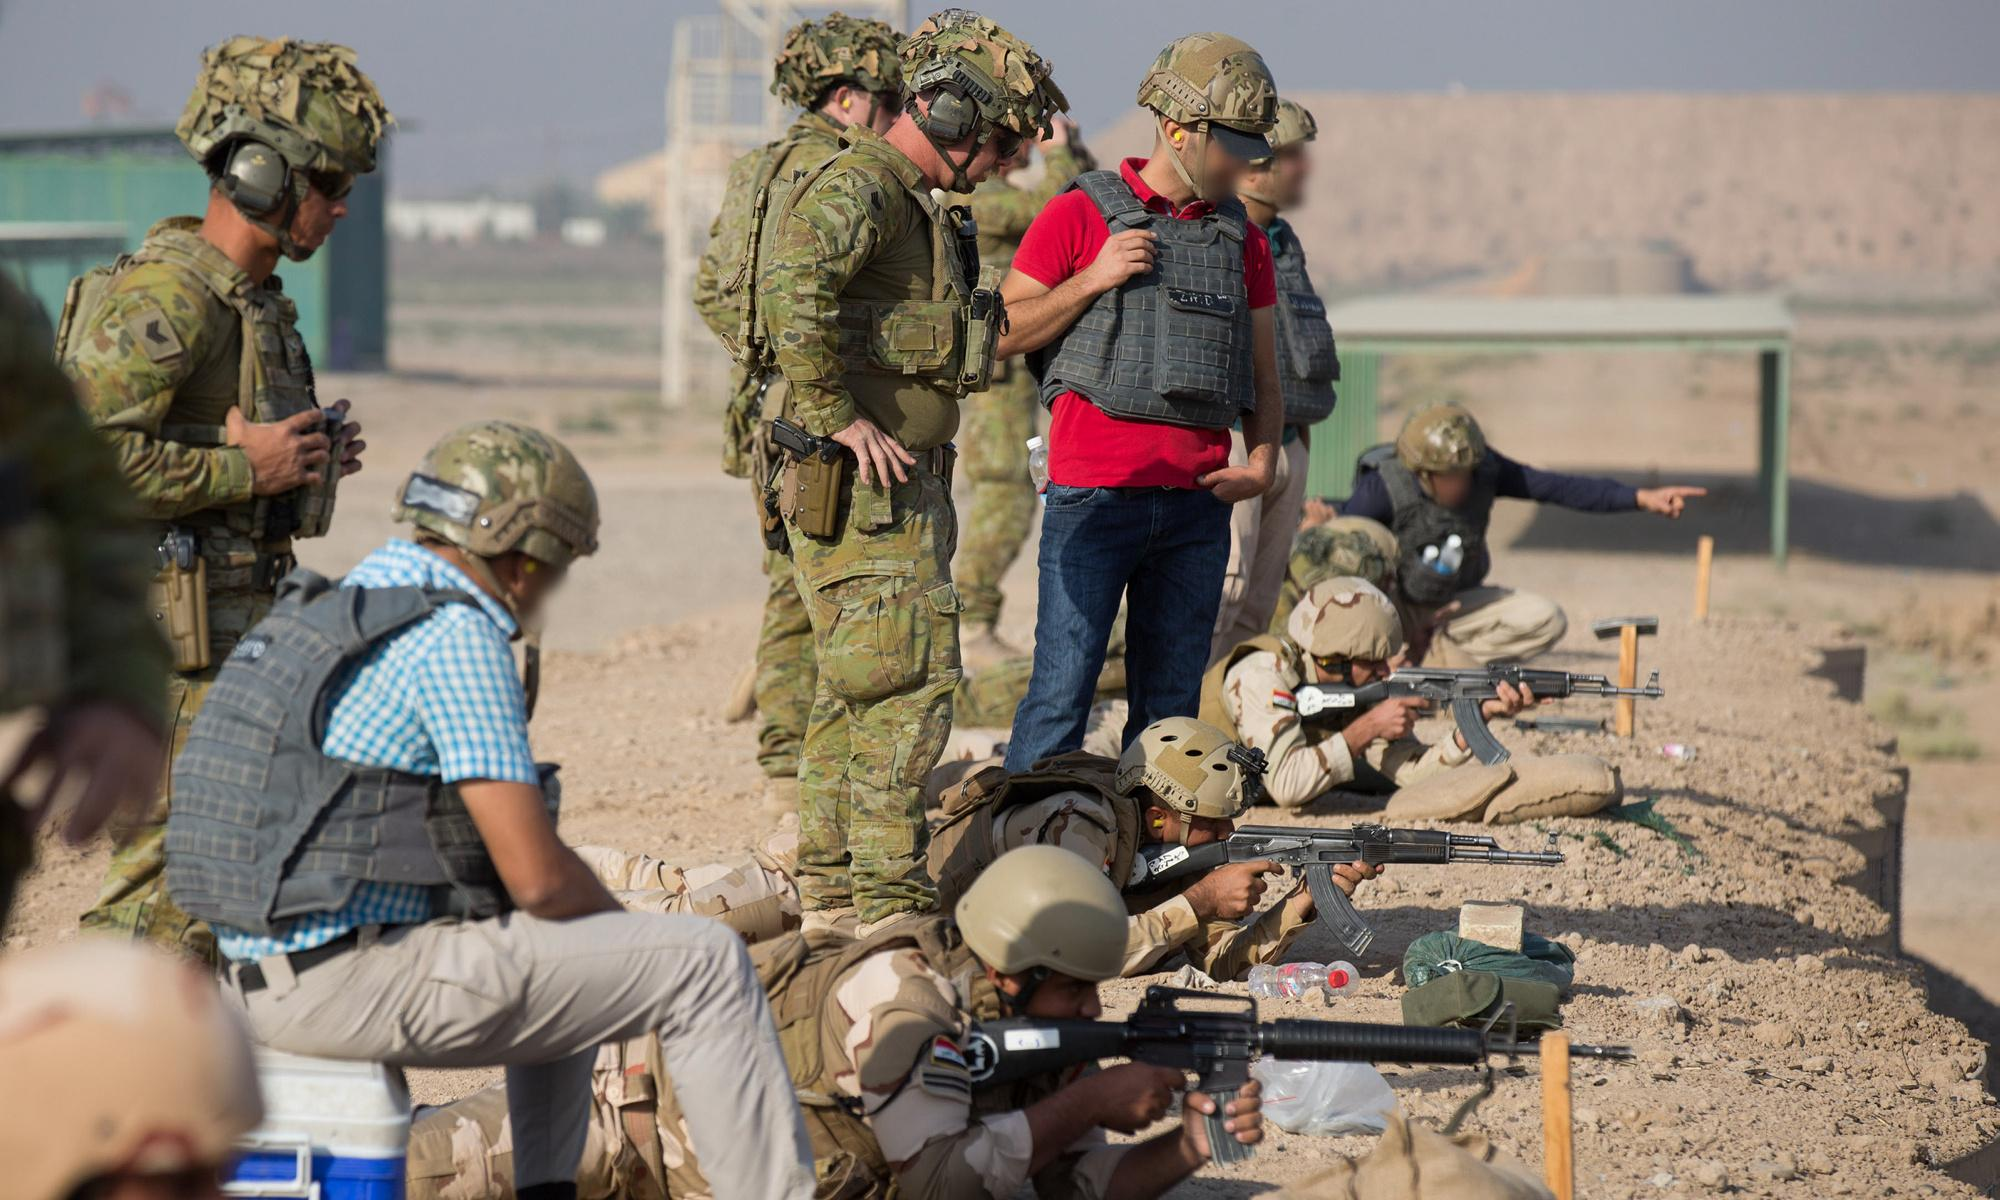 Iraqi interpreters who served beside Australians say they're prevented from applying for visas